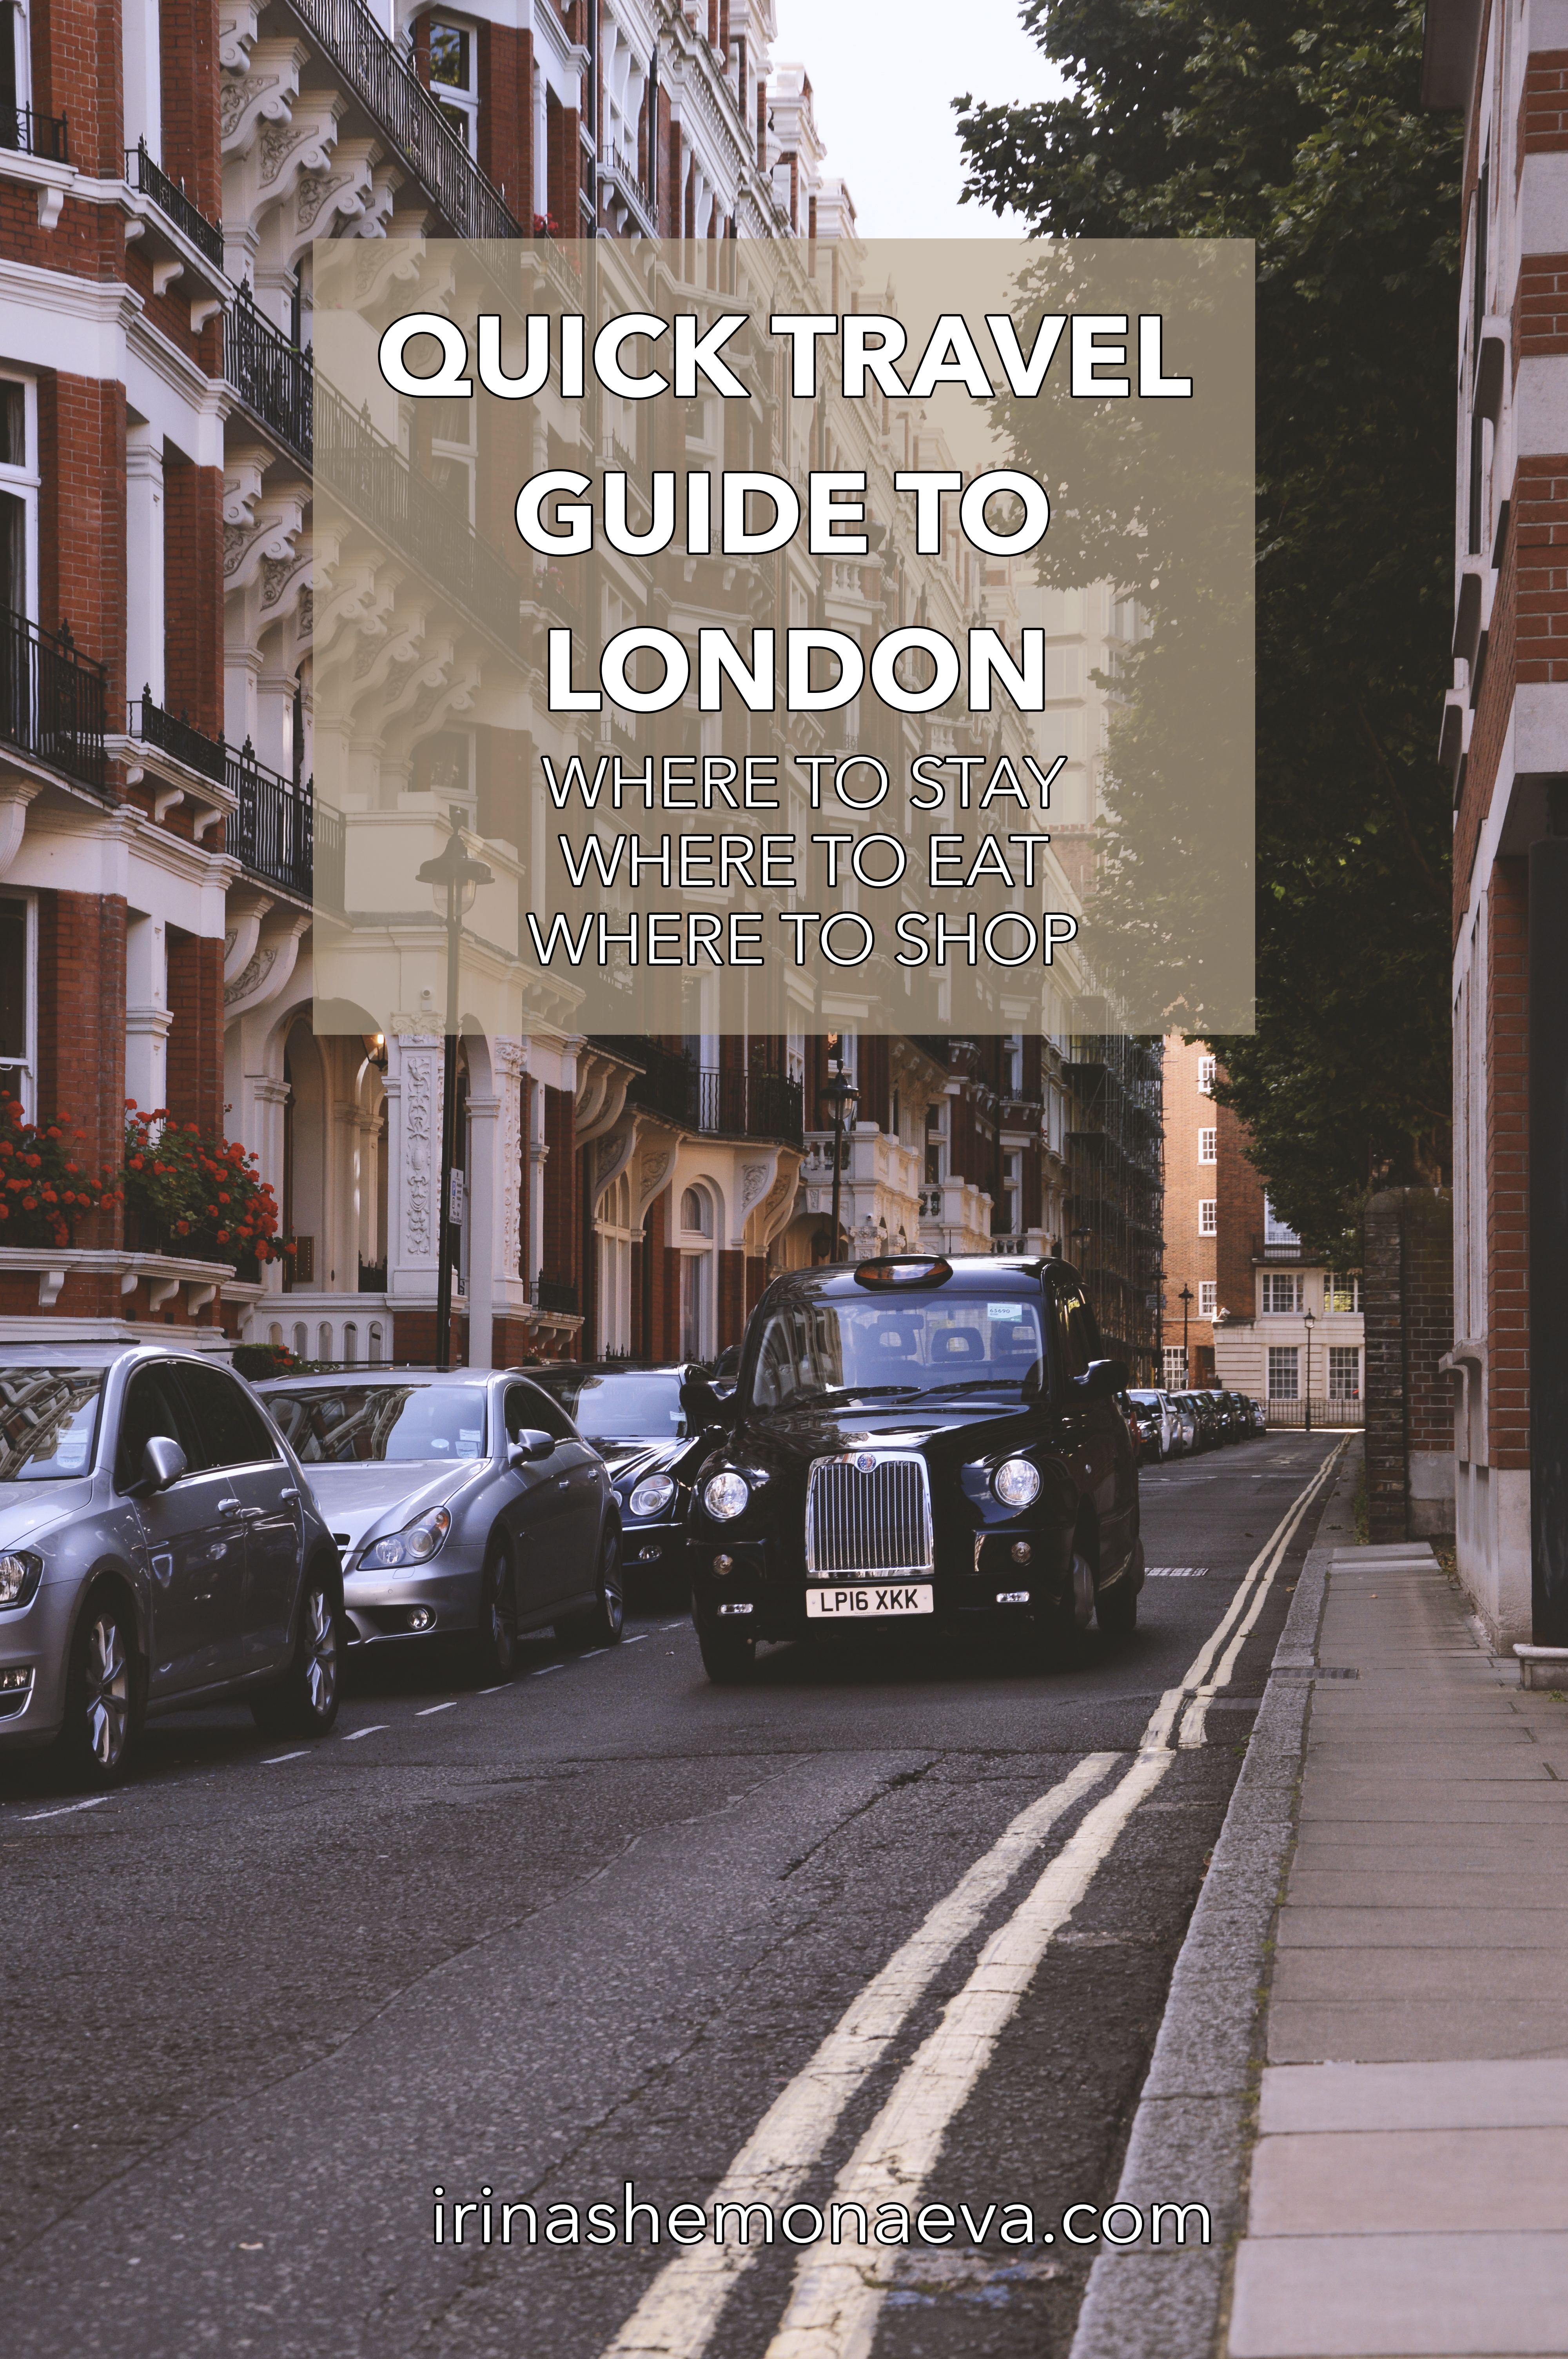 QUICK TRAVEL GUIDE TO LONDON